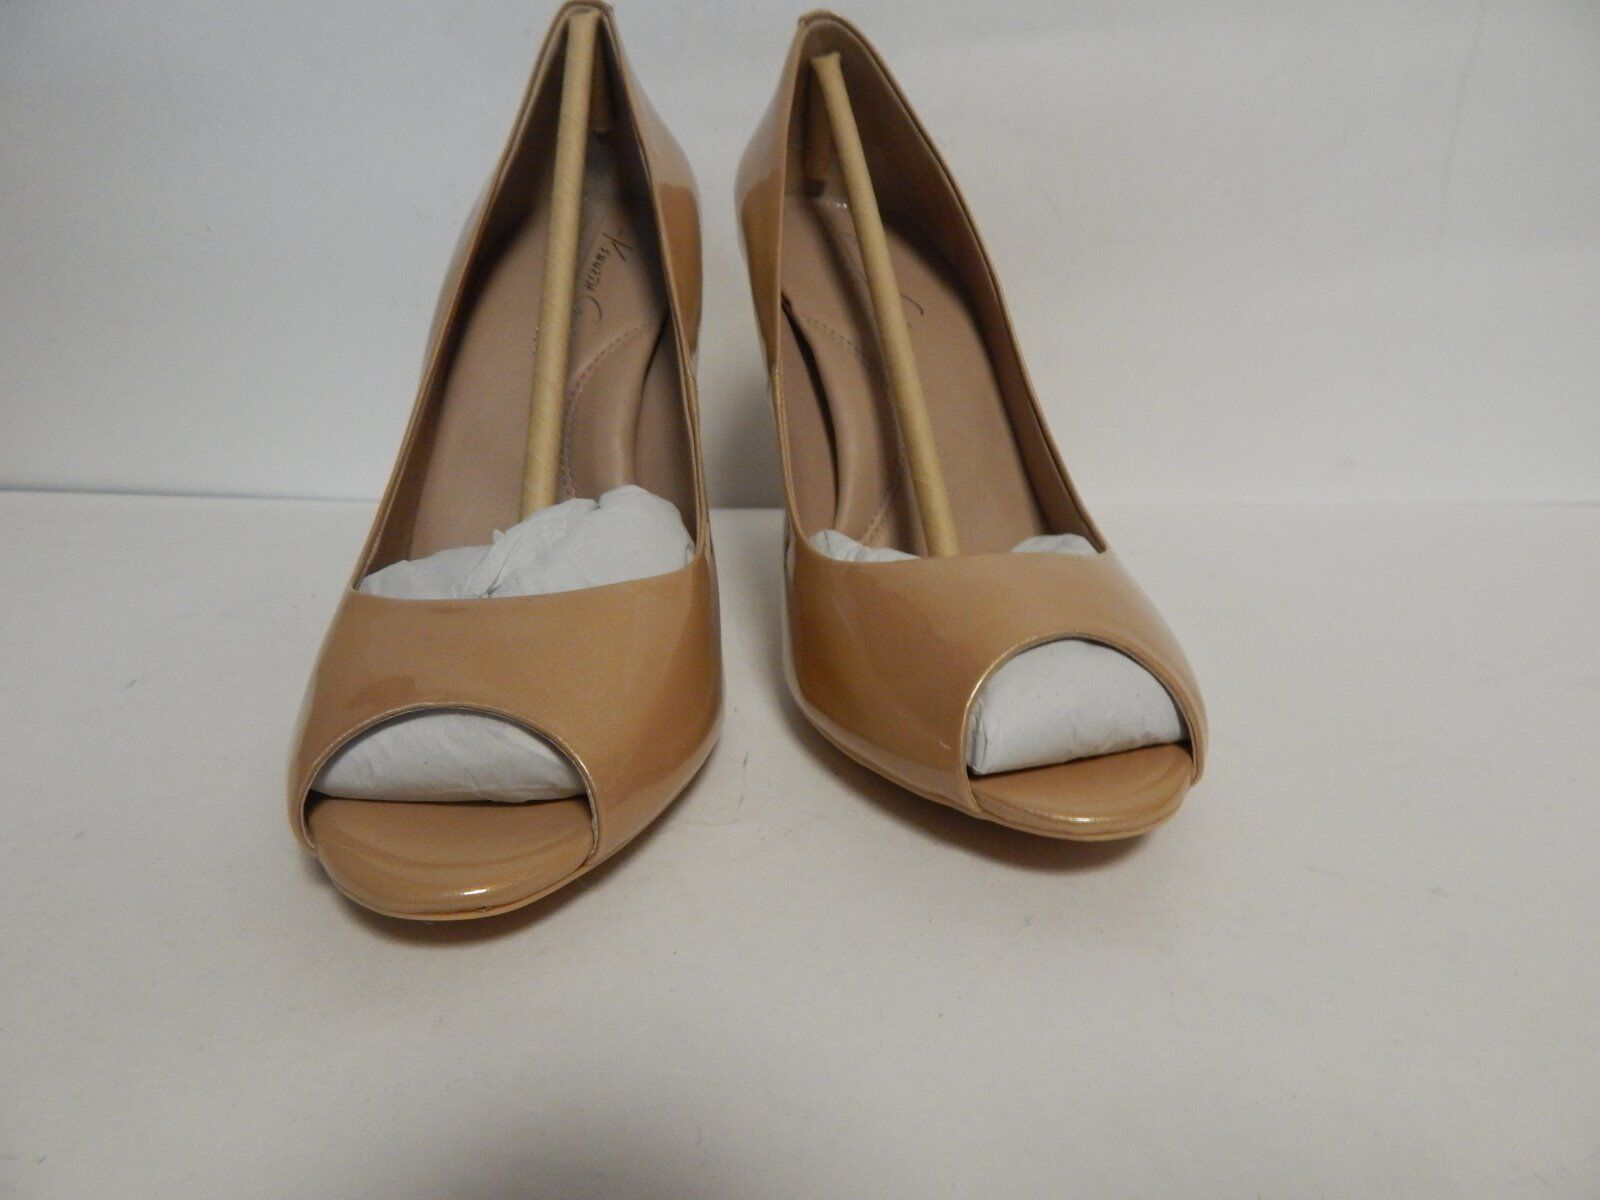 Kenneth Cole Ingrahm New Open Toe Pump Nude Patent Leder  New Ingrahm with Box 22177e